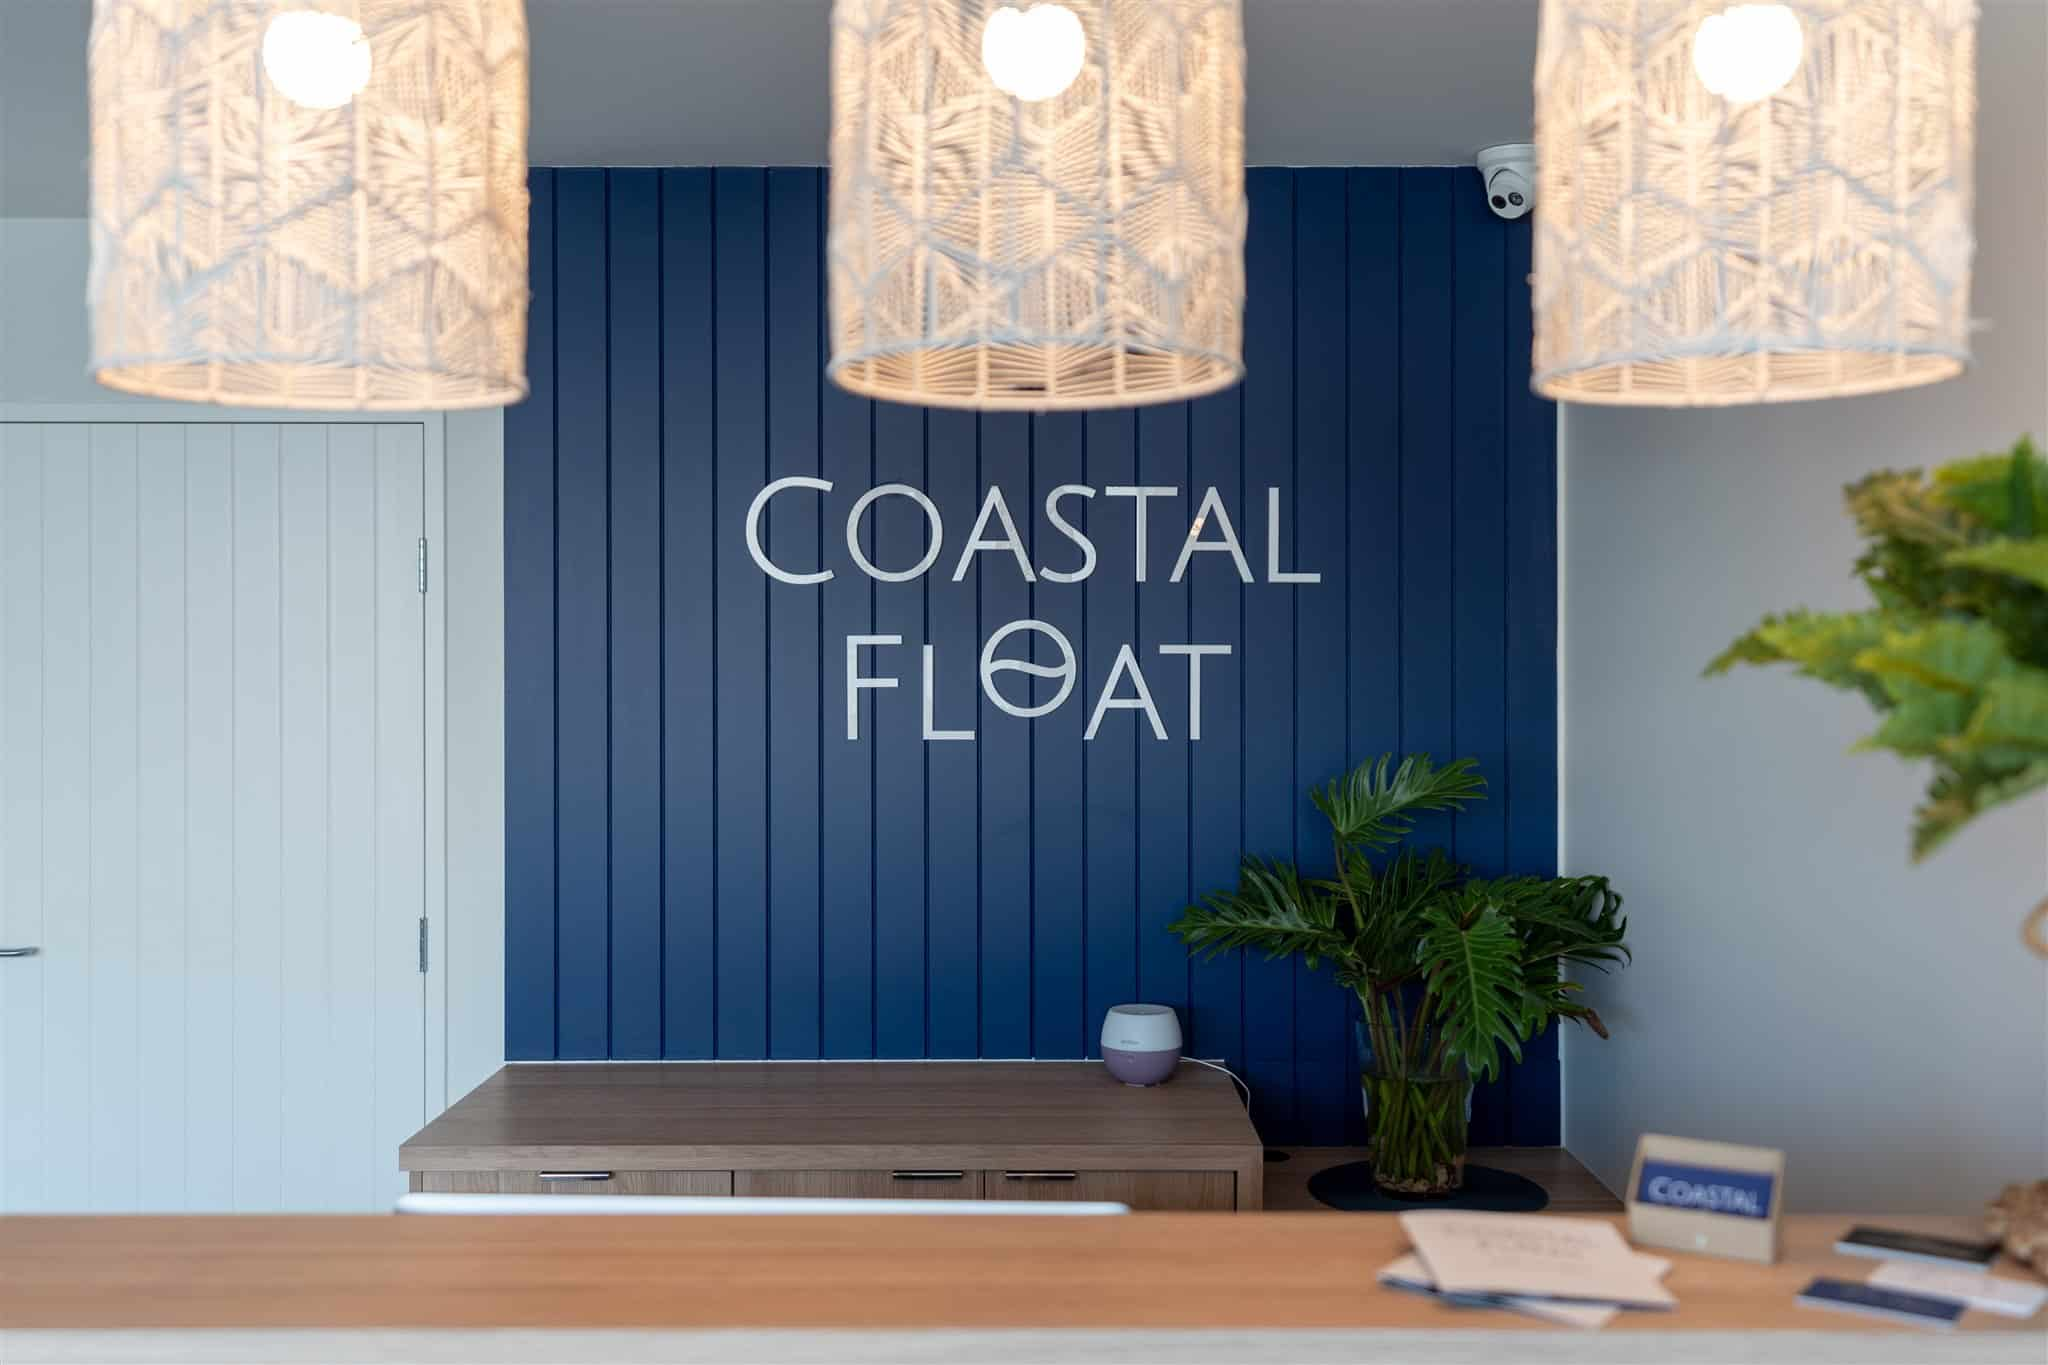 Coastal Float